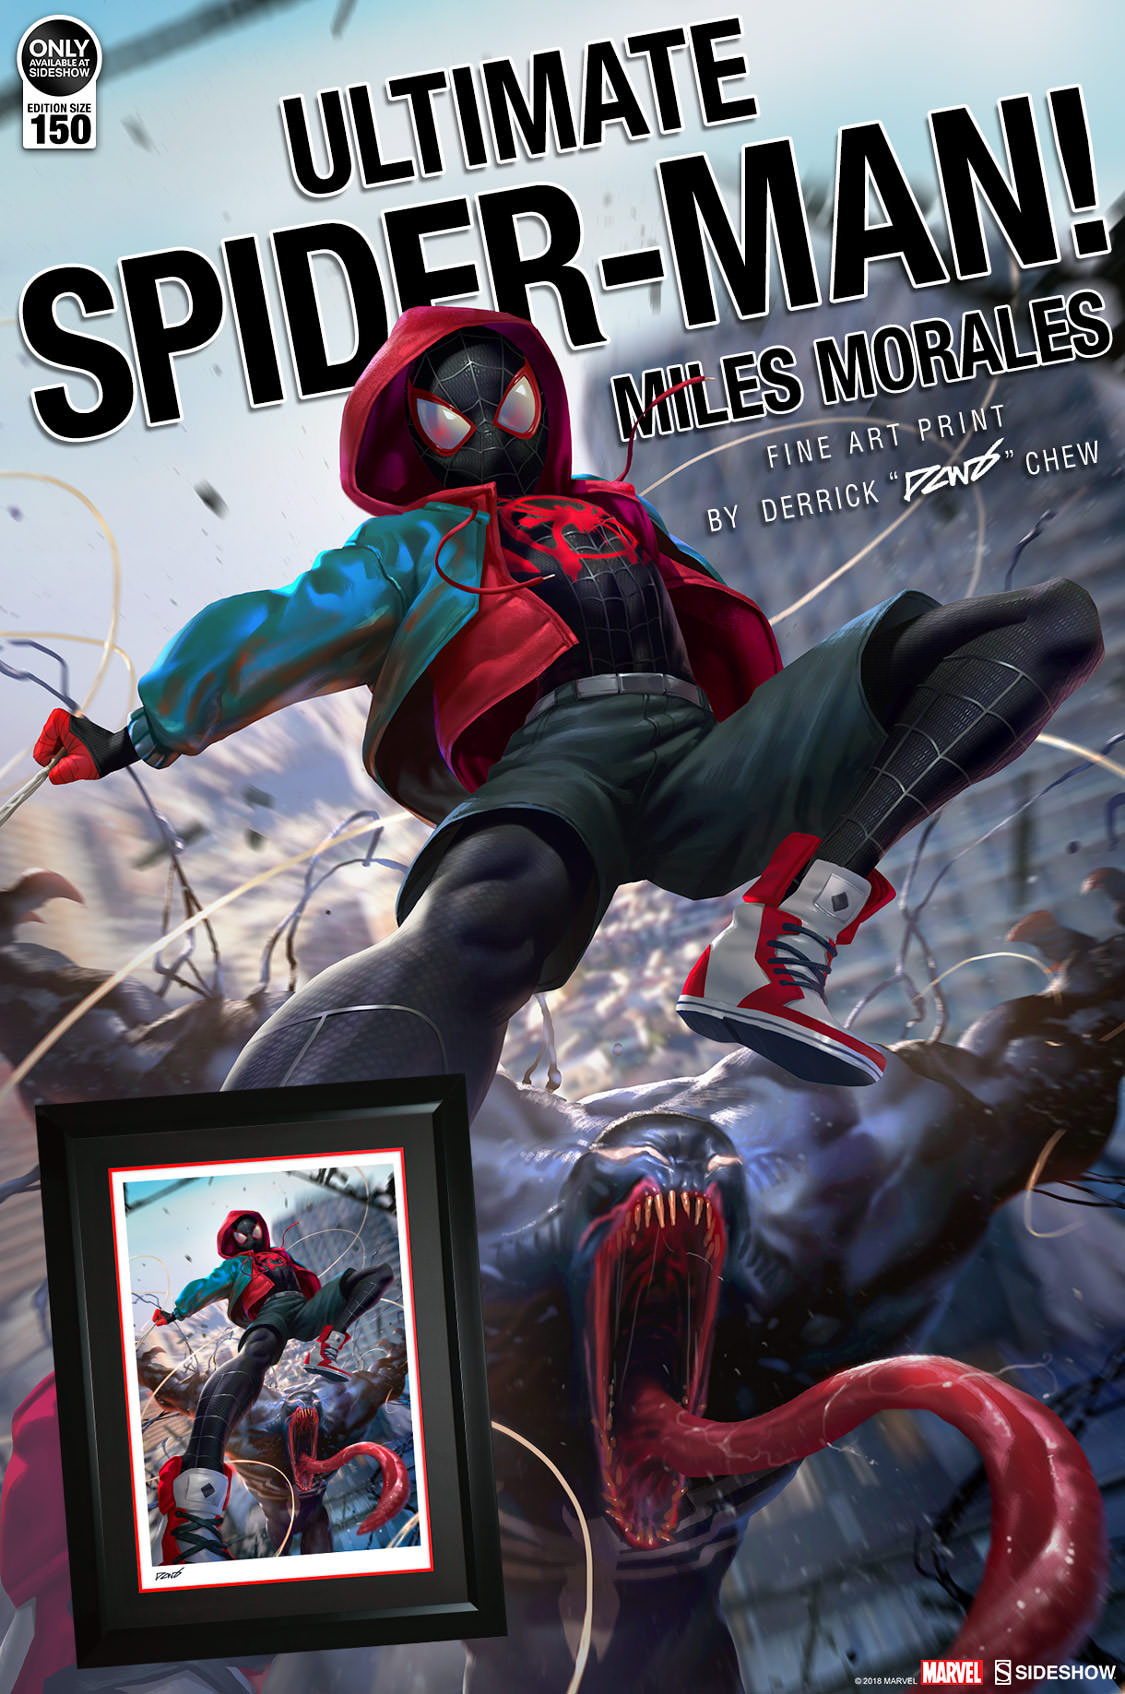 d2c846907fda64 Ultimate Spider-Man Miles Morales Fine Art Print